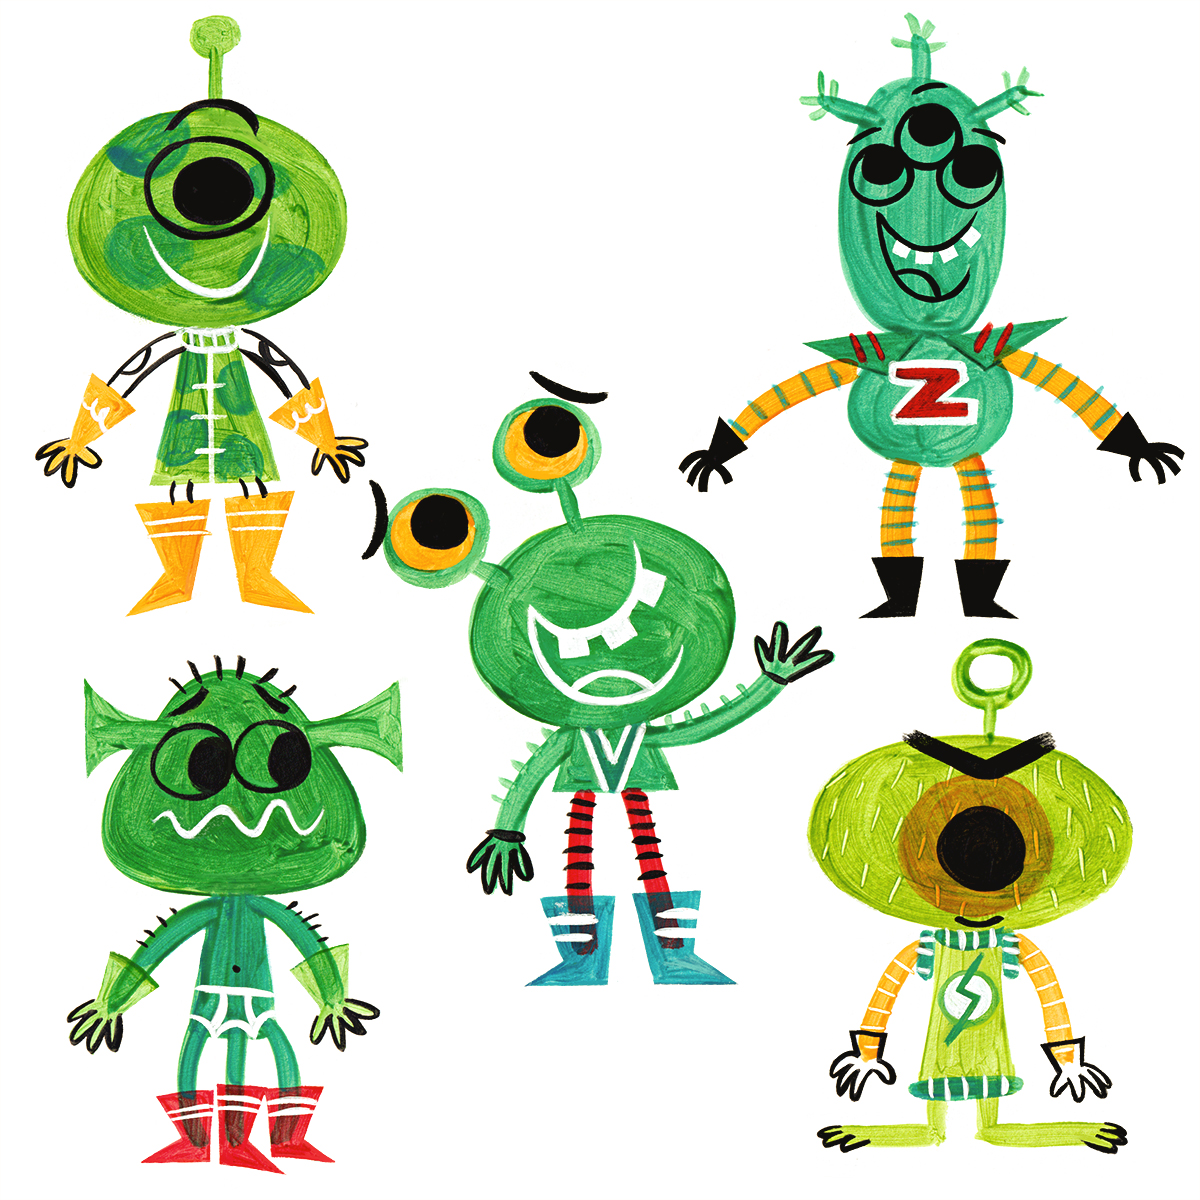 A BUNCH OF ALIENS